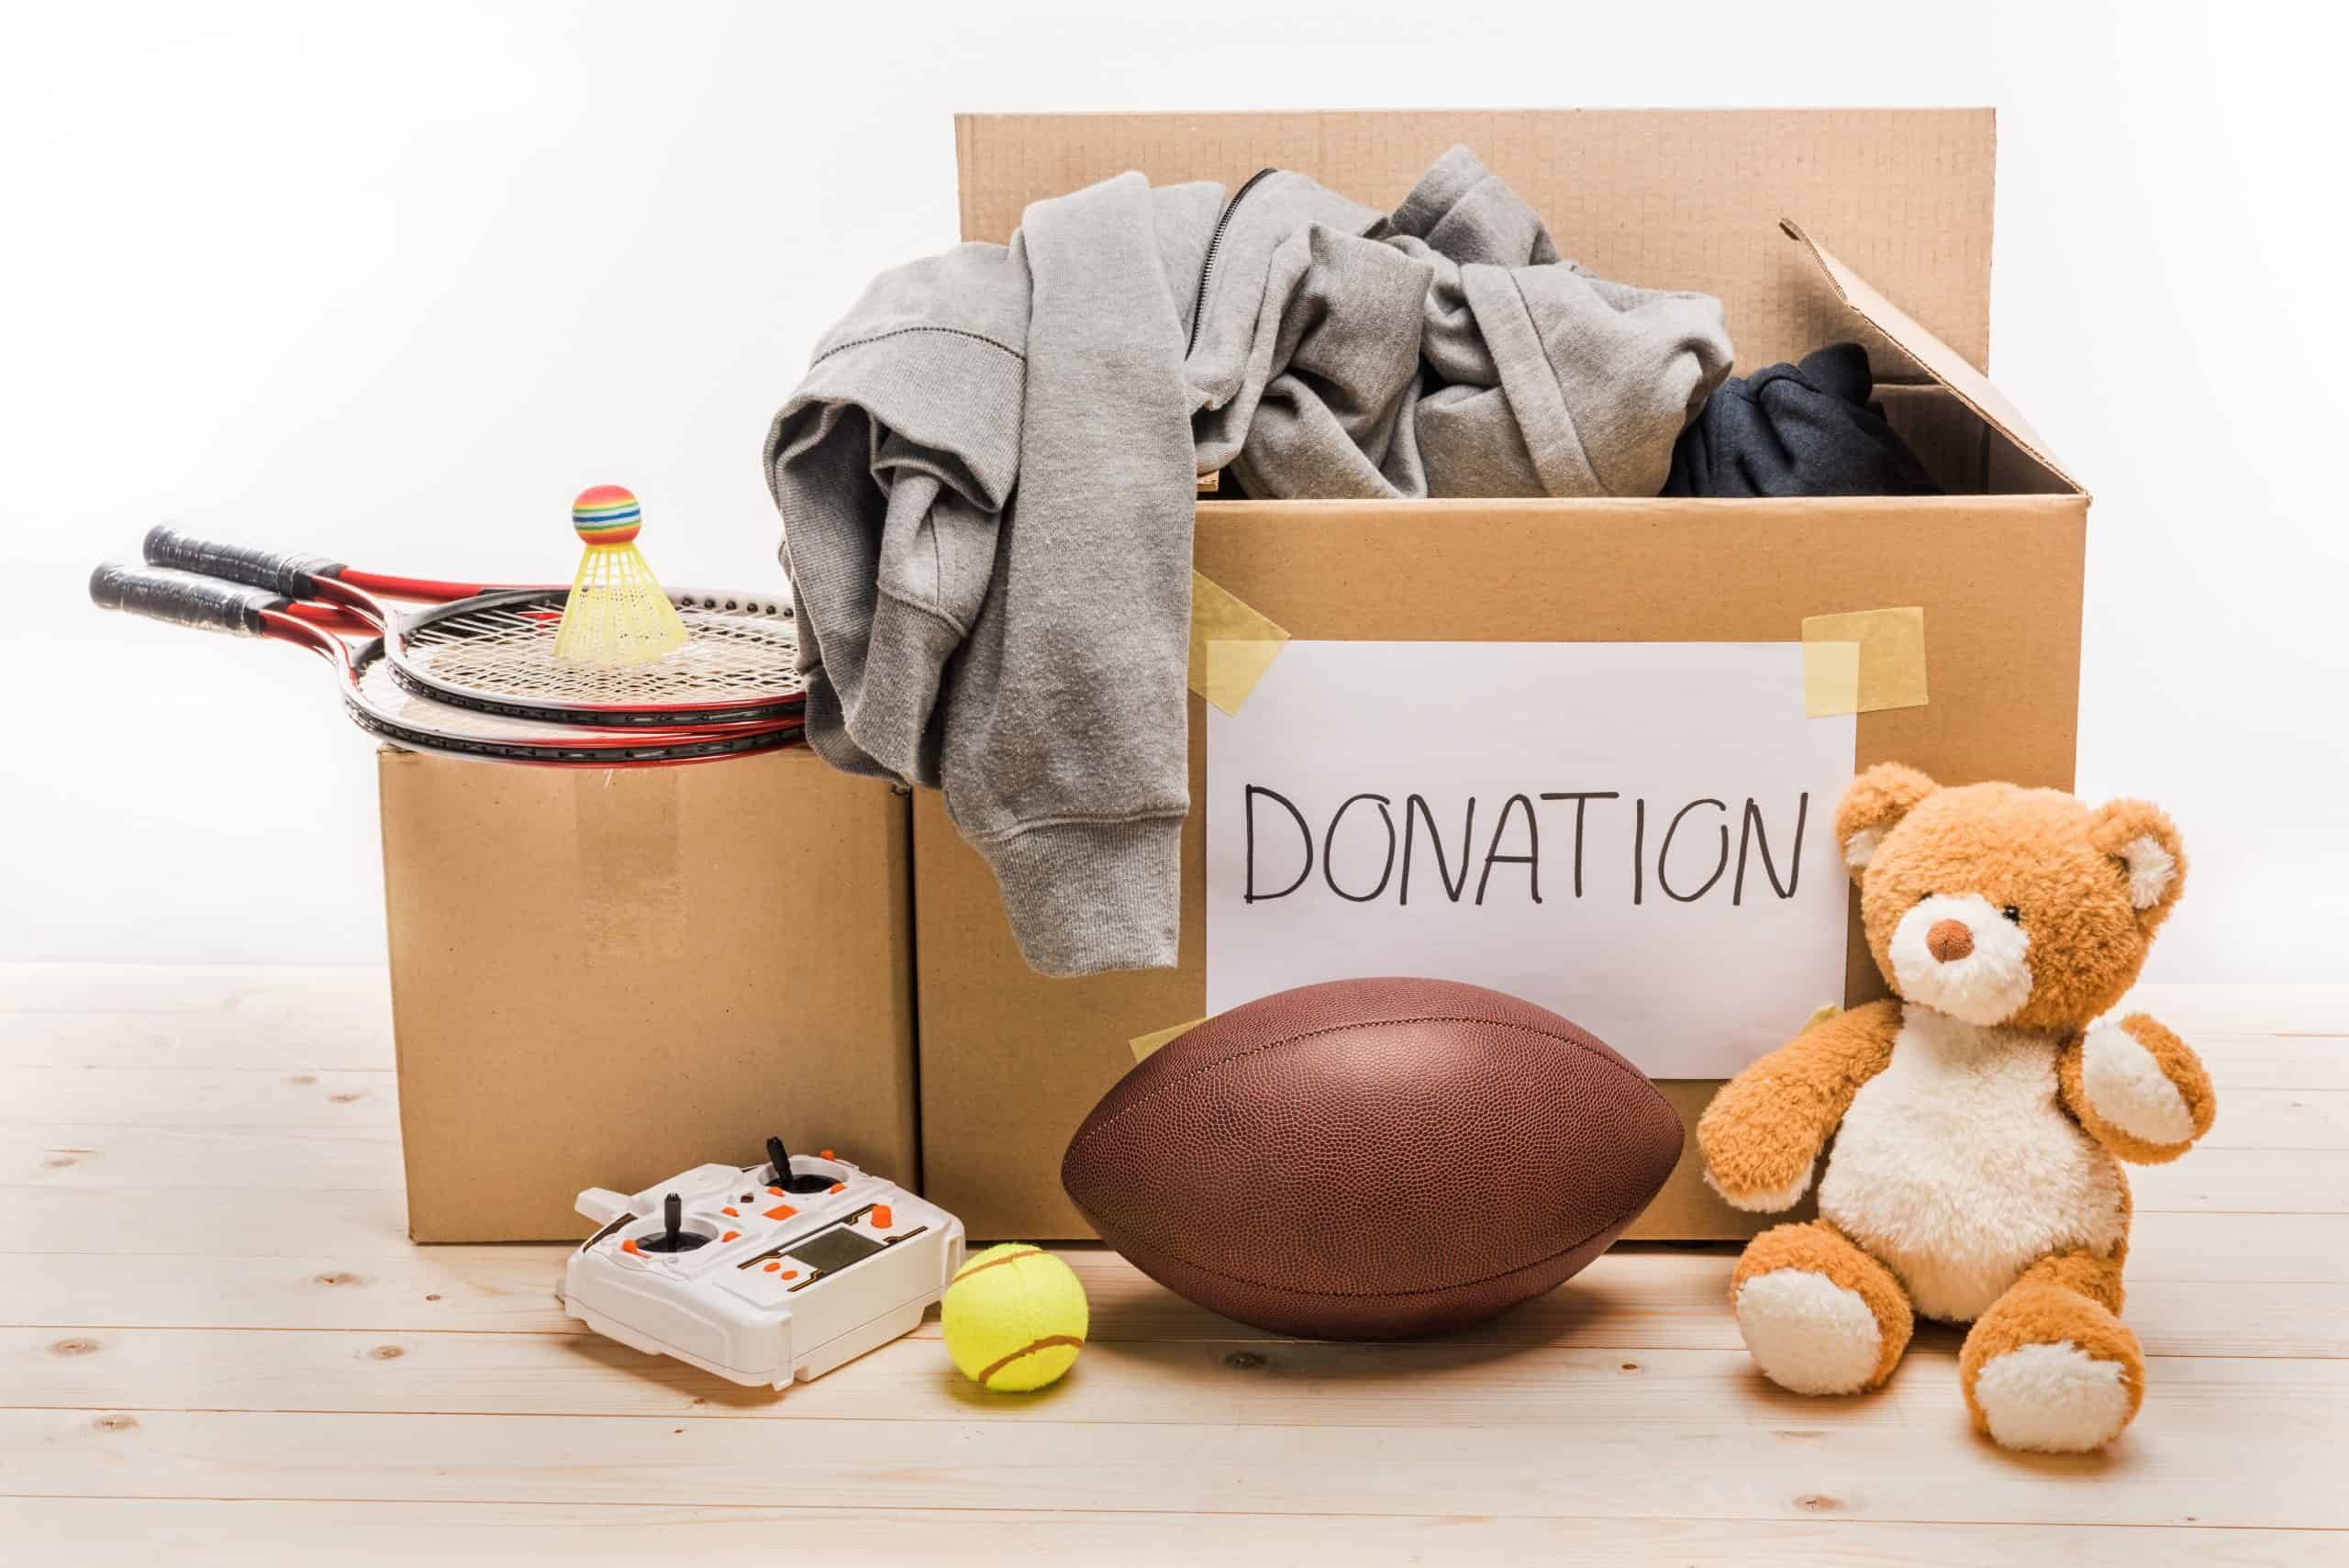 Declutter your home - Box labeled for donation with old shirts, football, badminton racket and teddy bear